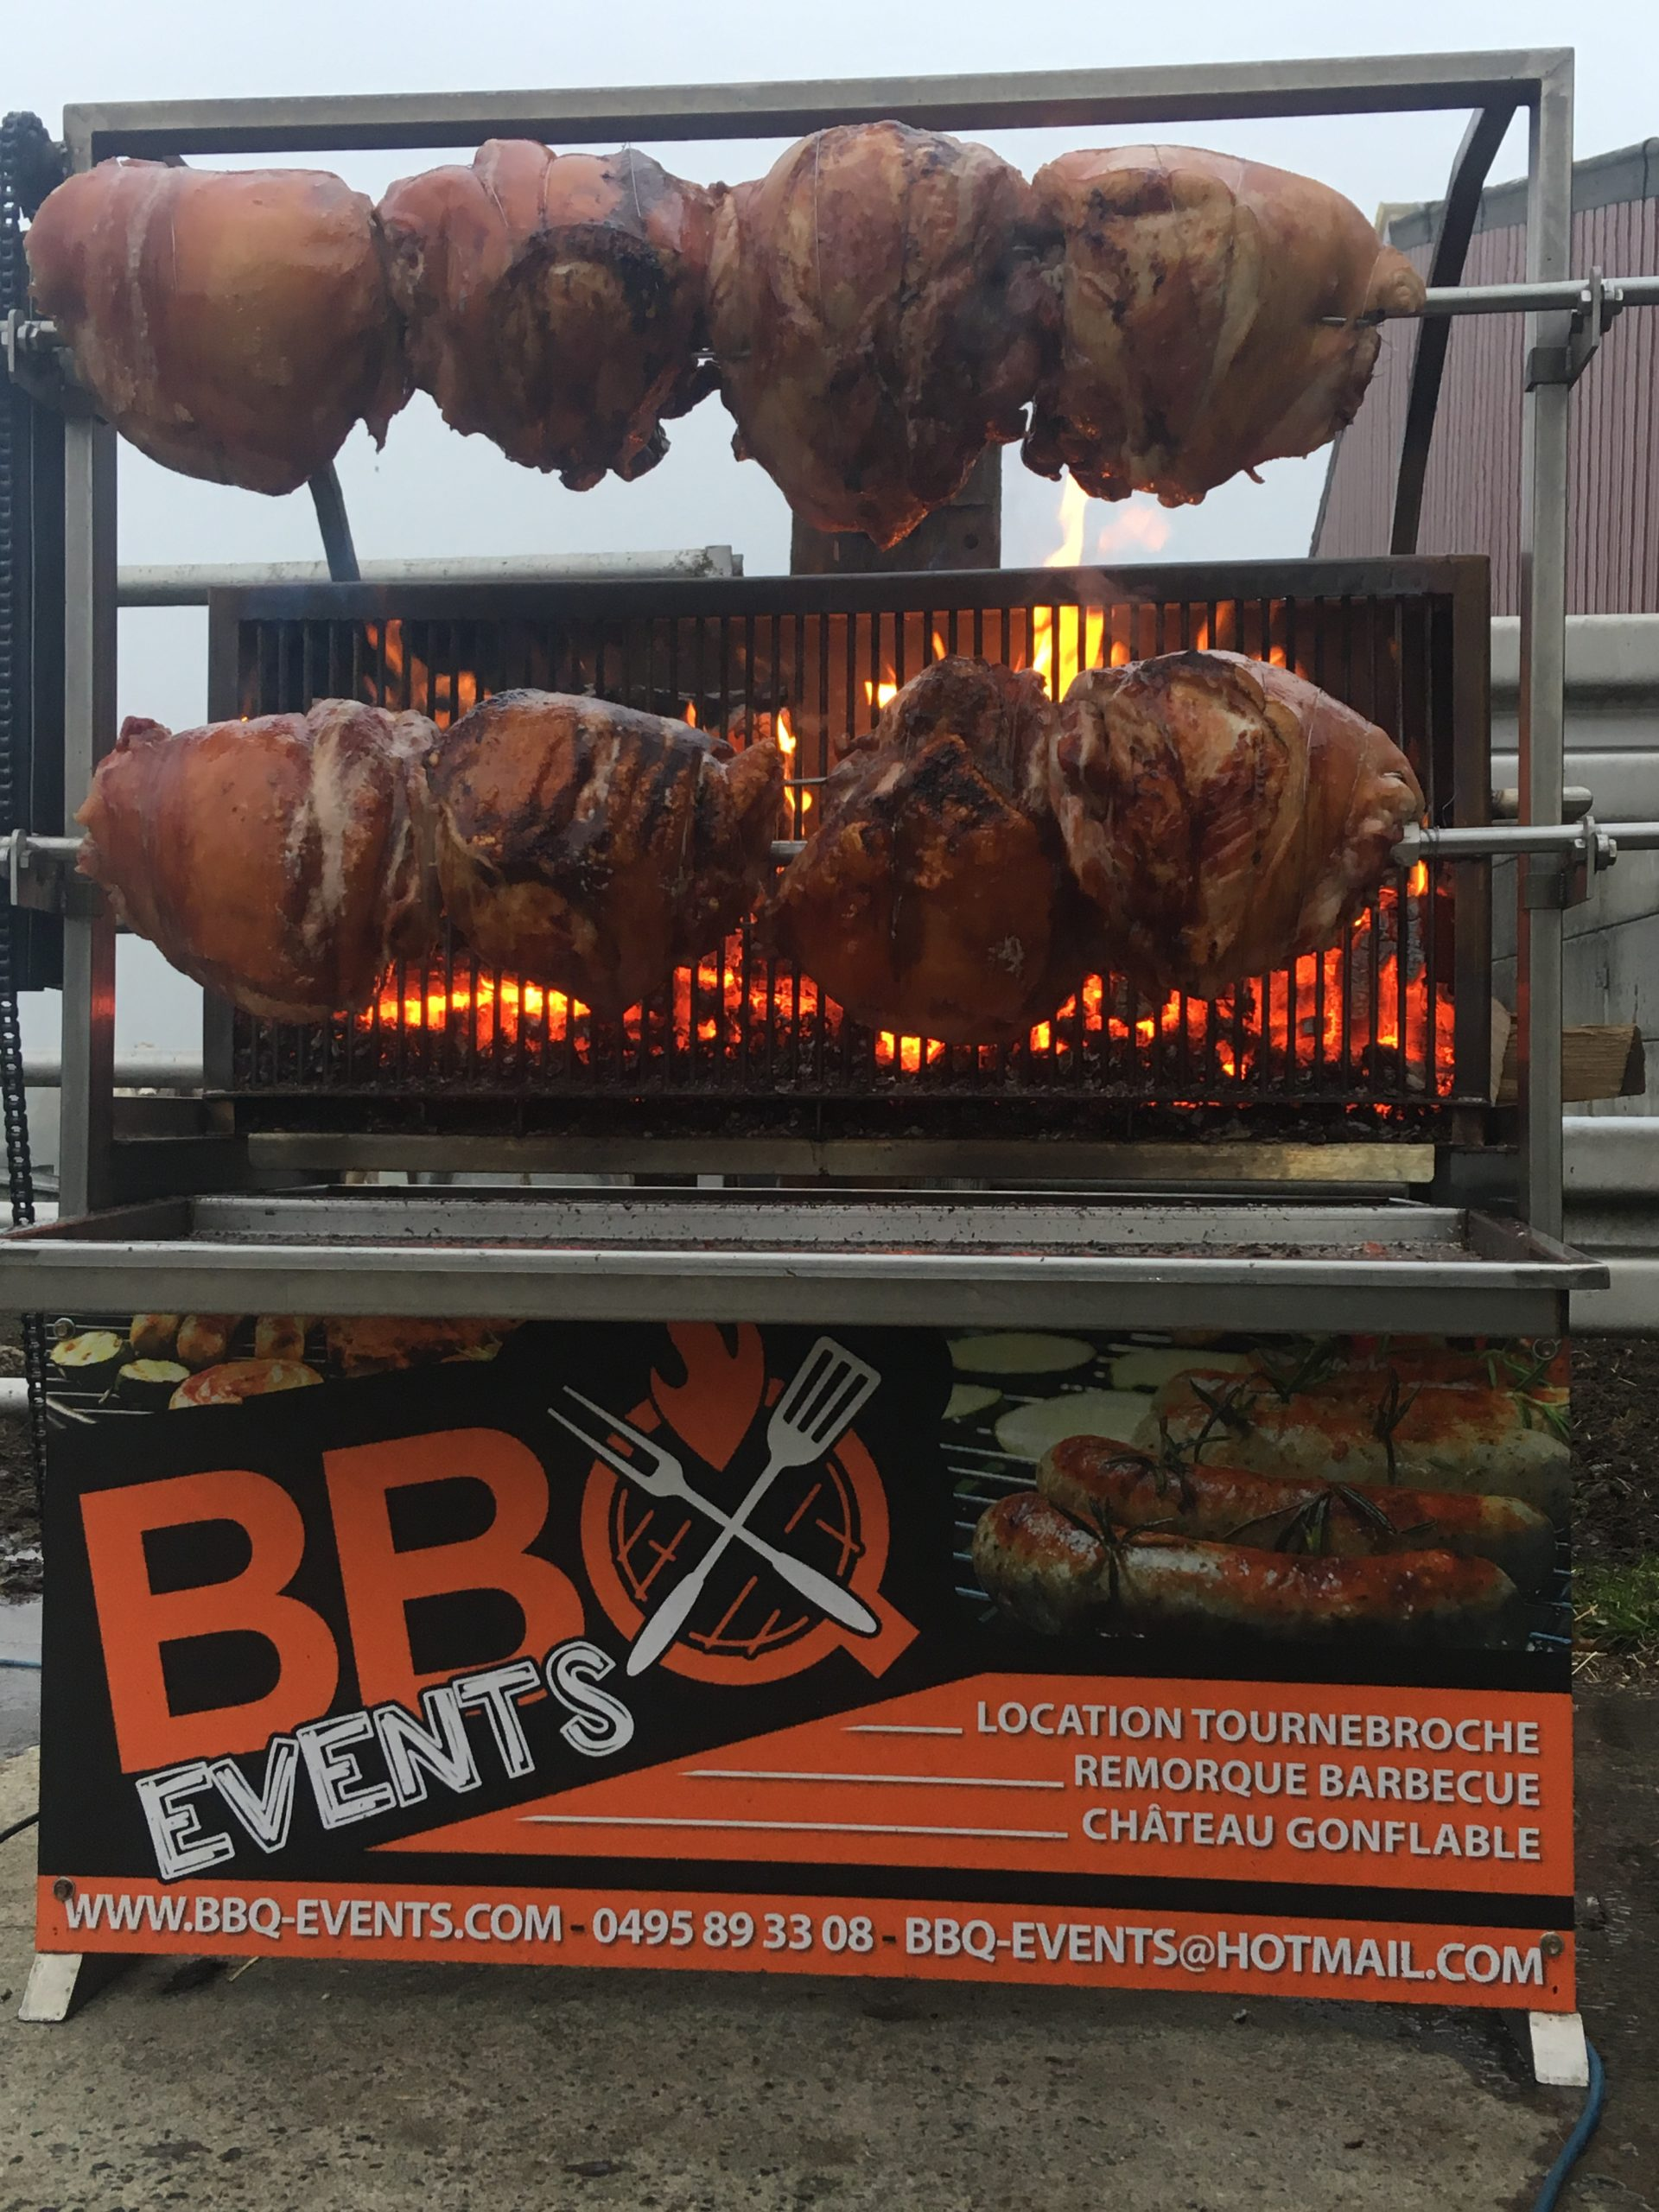 kwakoo-event-location-barbecue-bbq-events-12